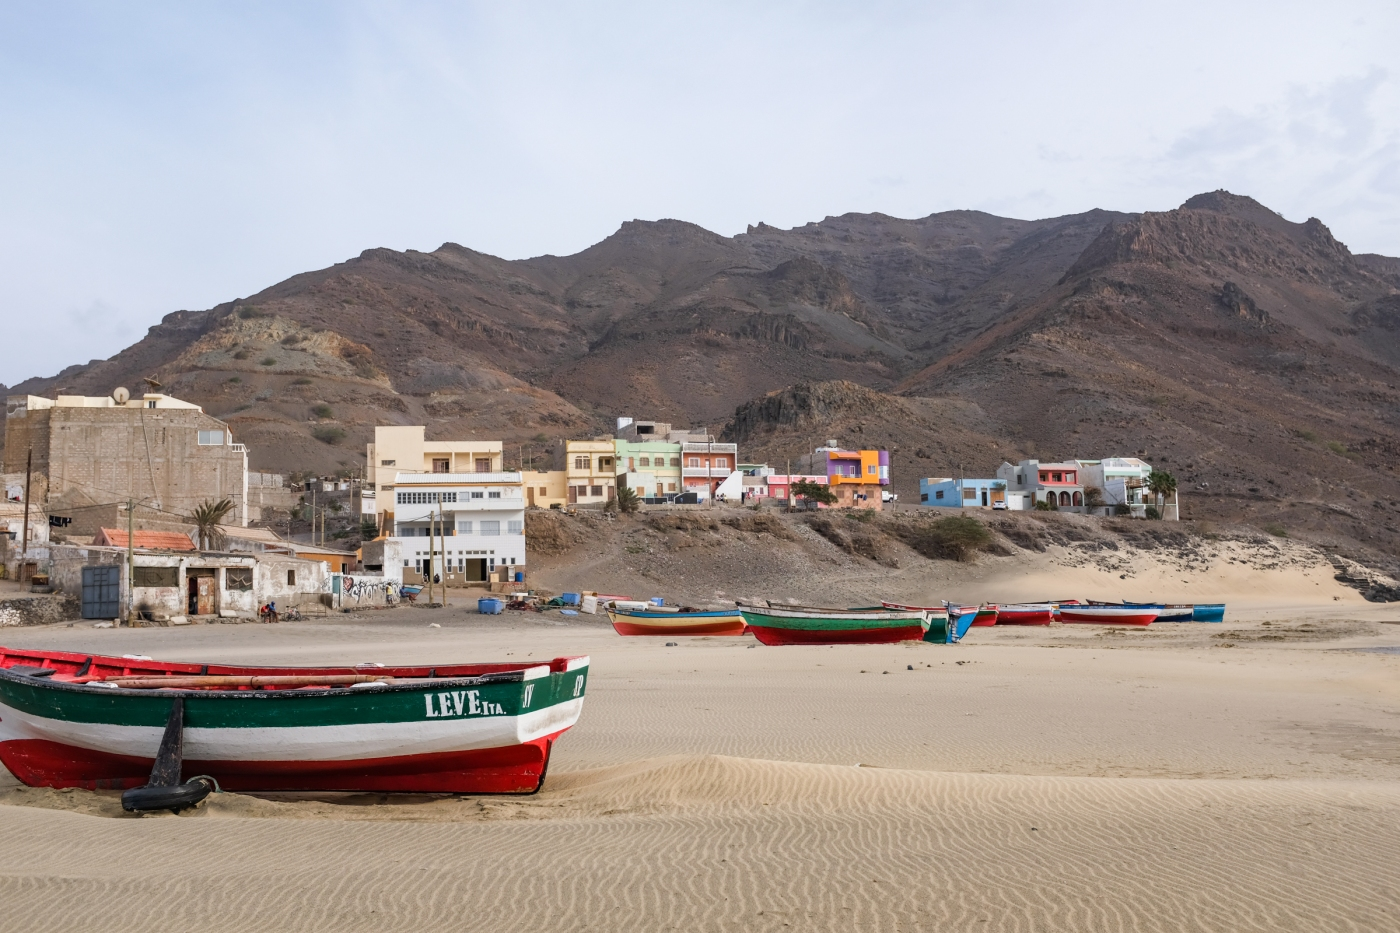 Painted boats on a sandy beach in front of a small fishing village